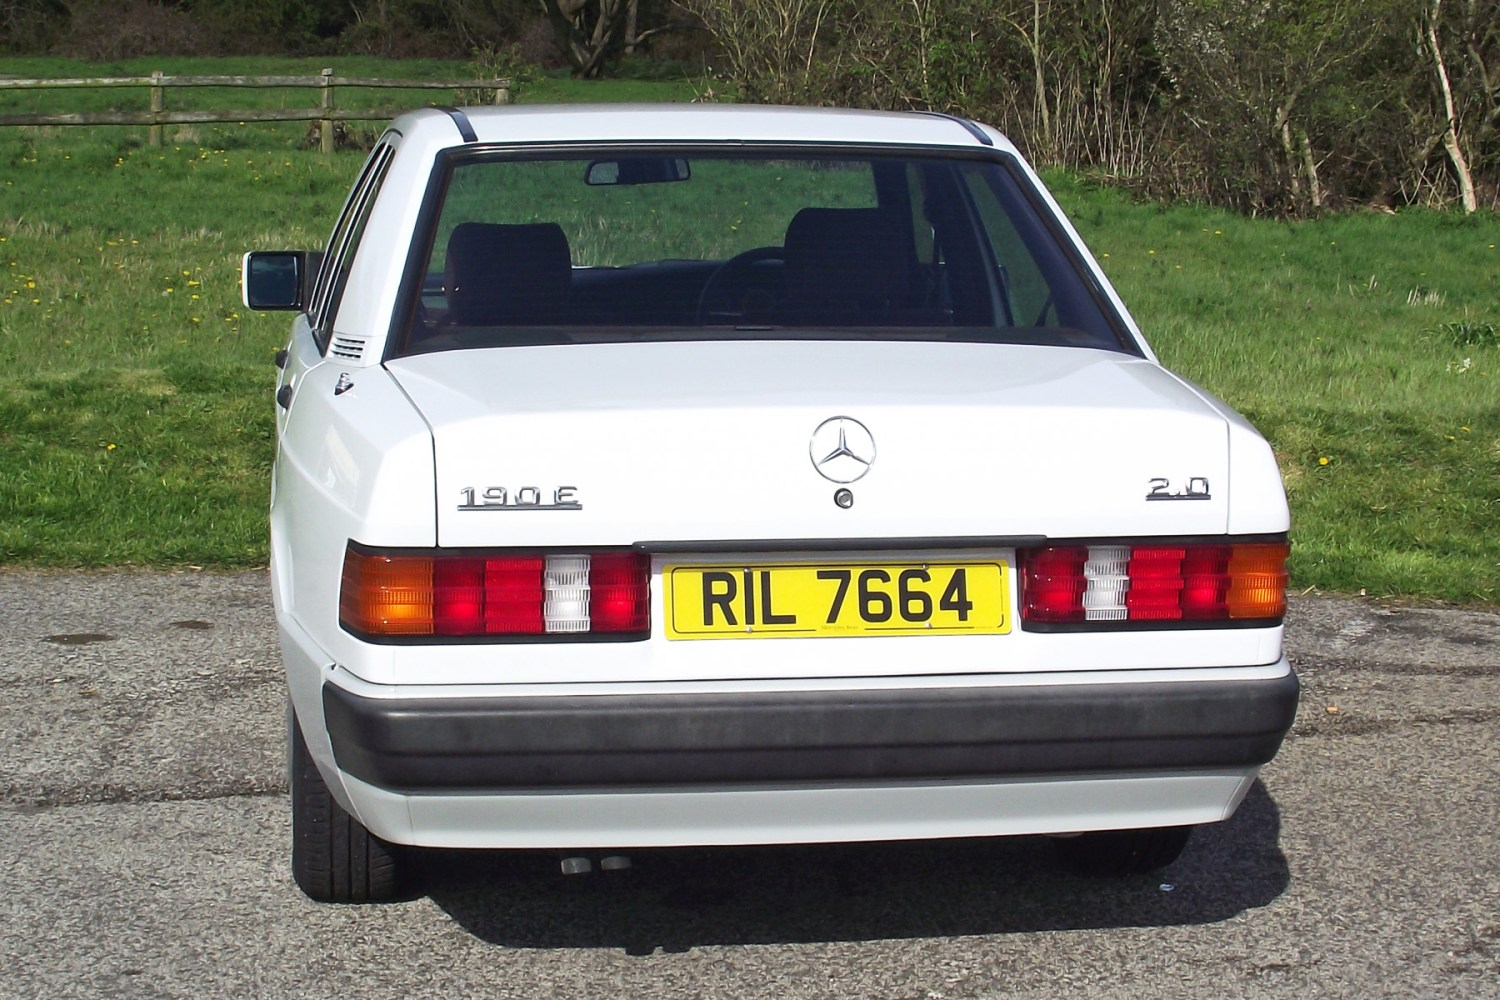 Mercedes-Benz 190E: what should I look out for?